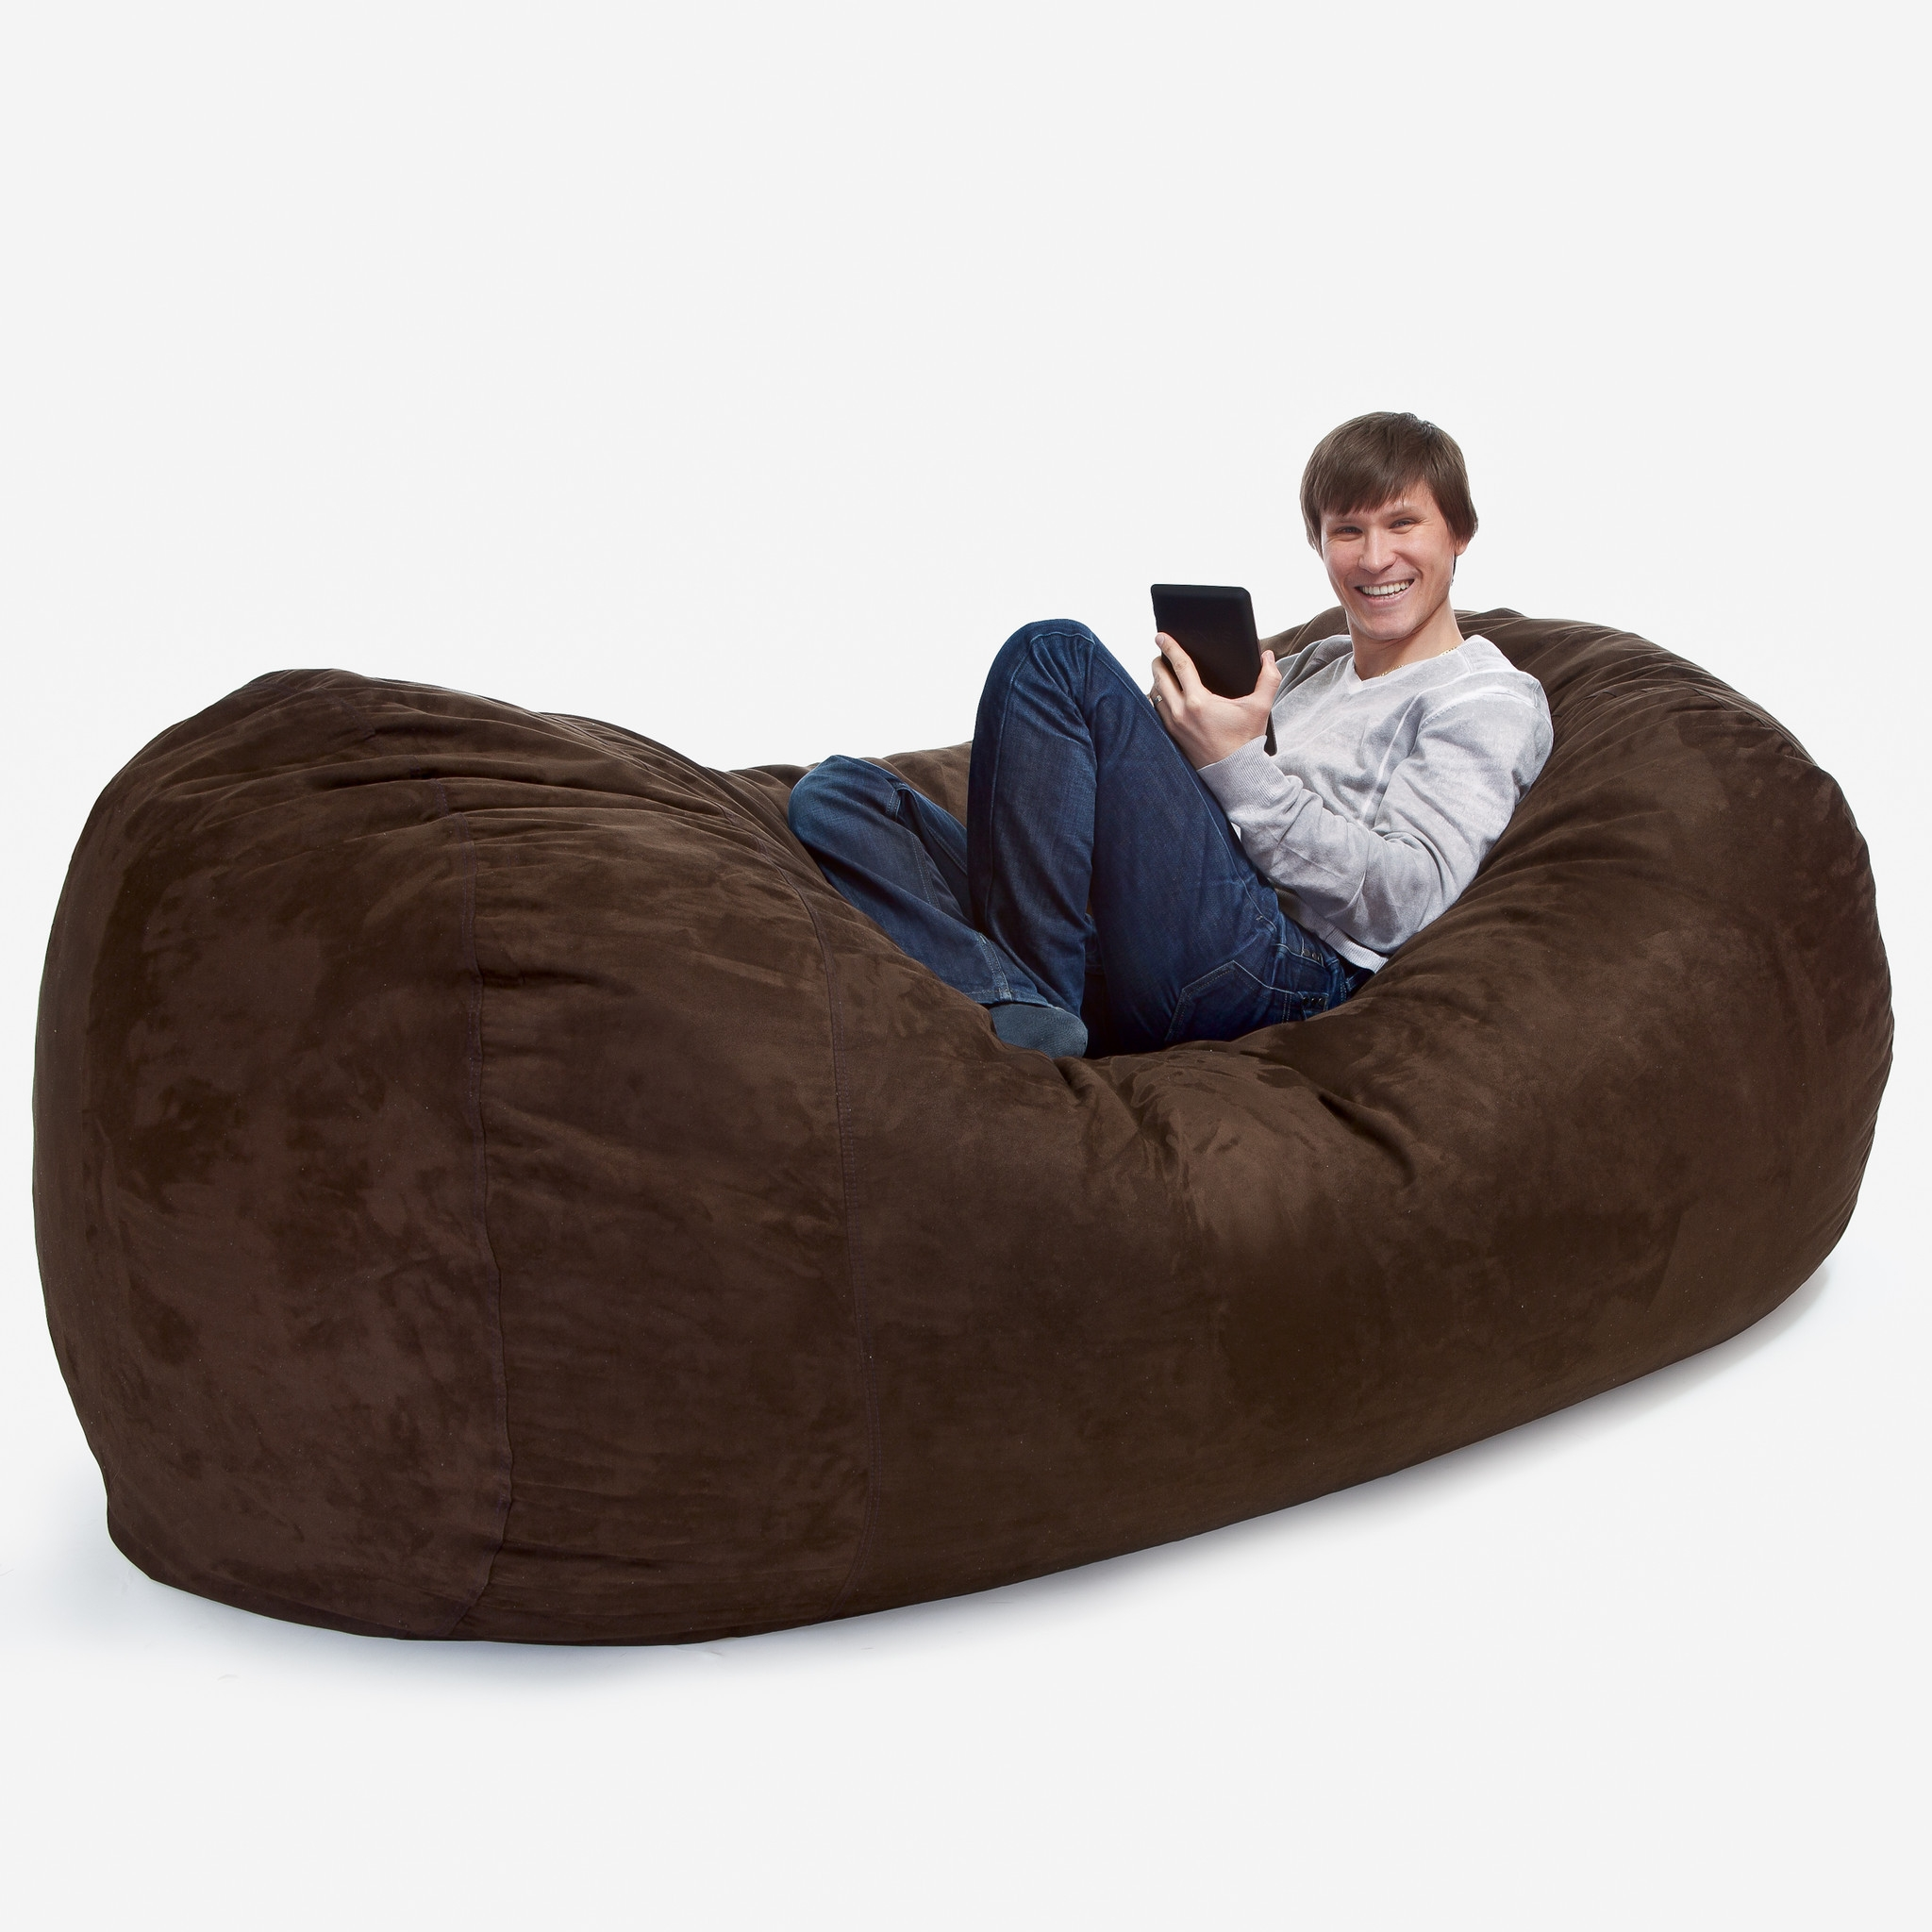 7 Classy Adult Bean Bags Room Bath Throughout Bean Bag Sofas And Chairs (Image 1 of 15)